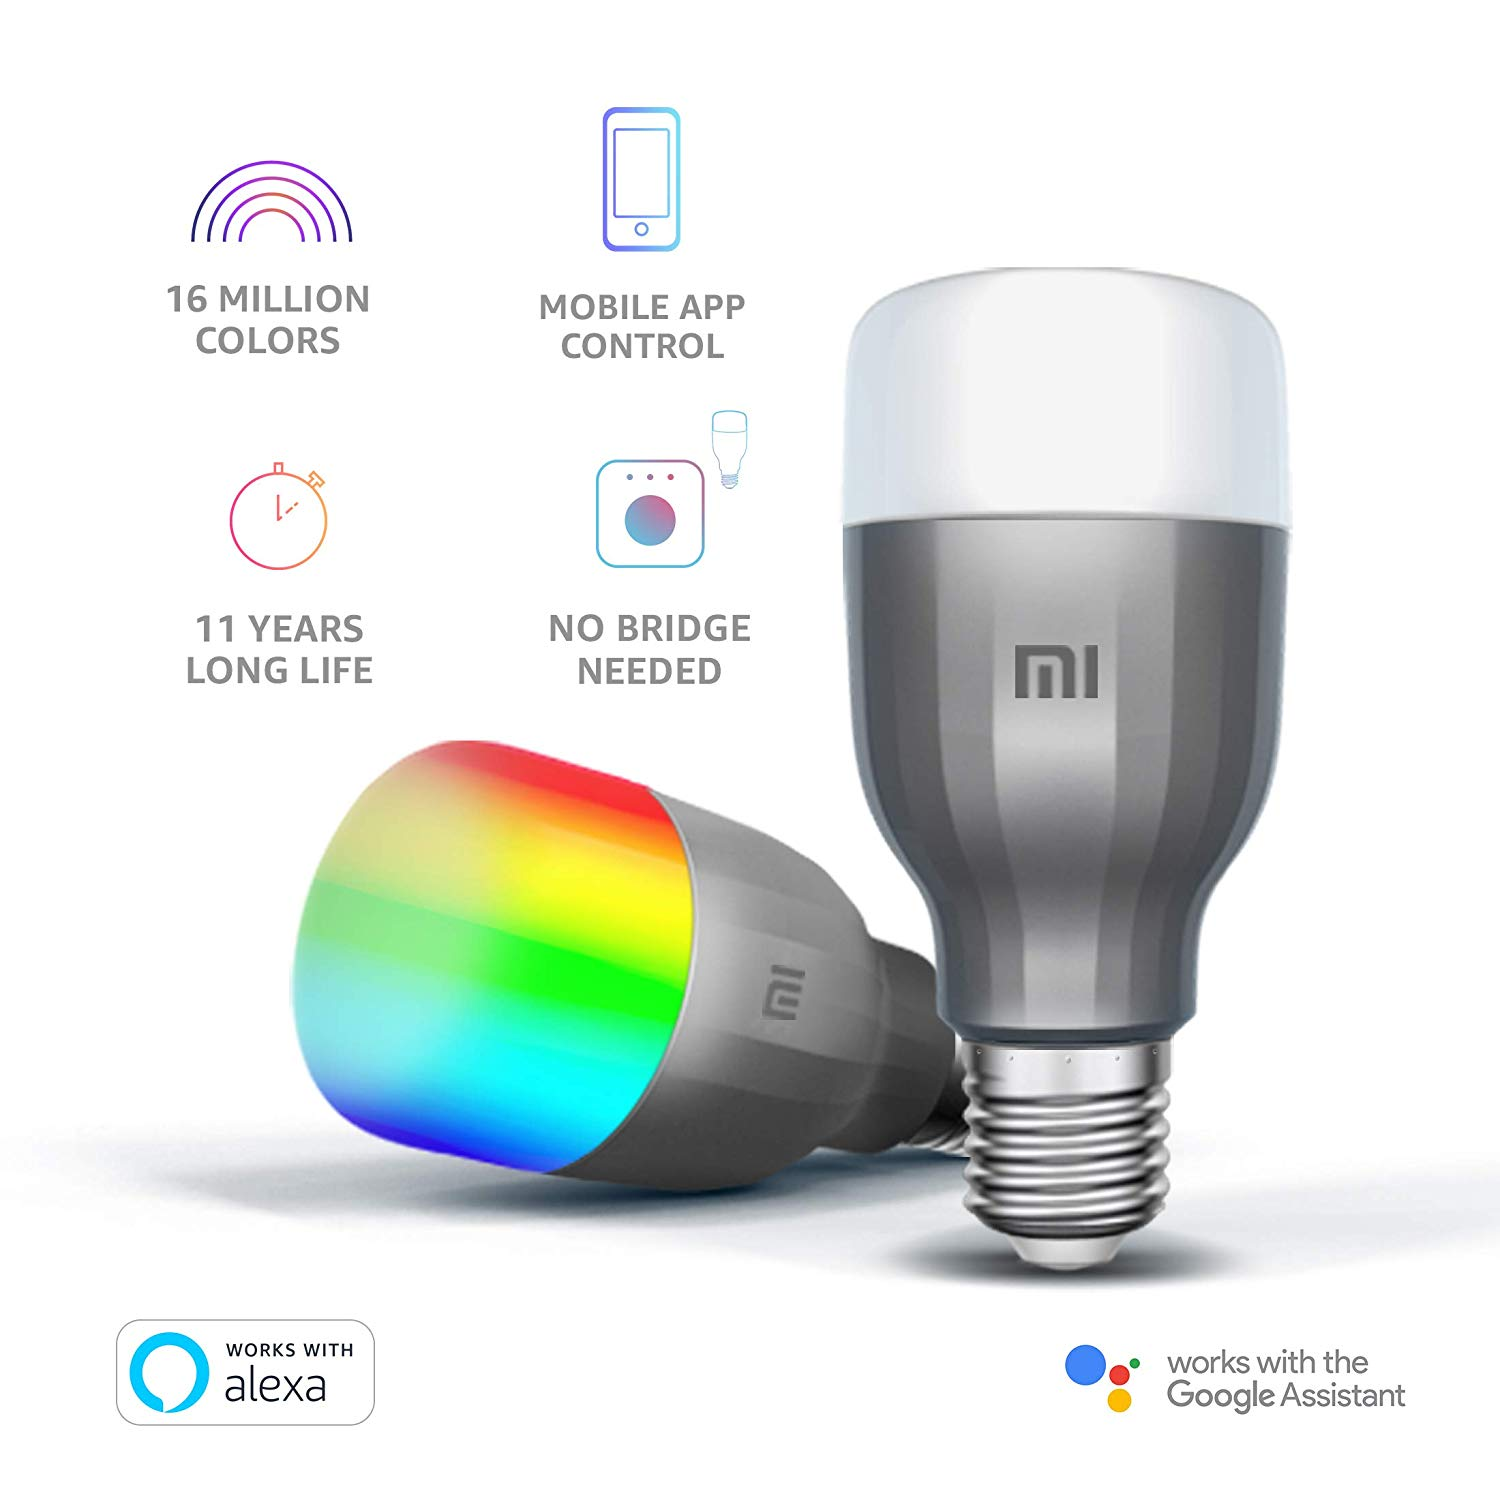 Mi LED Wi-Fi 10W Smart Bulb Compatible with Amazon Alexa and Google Assistant